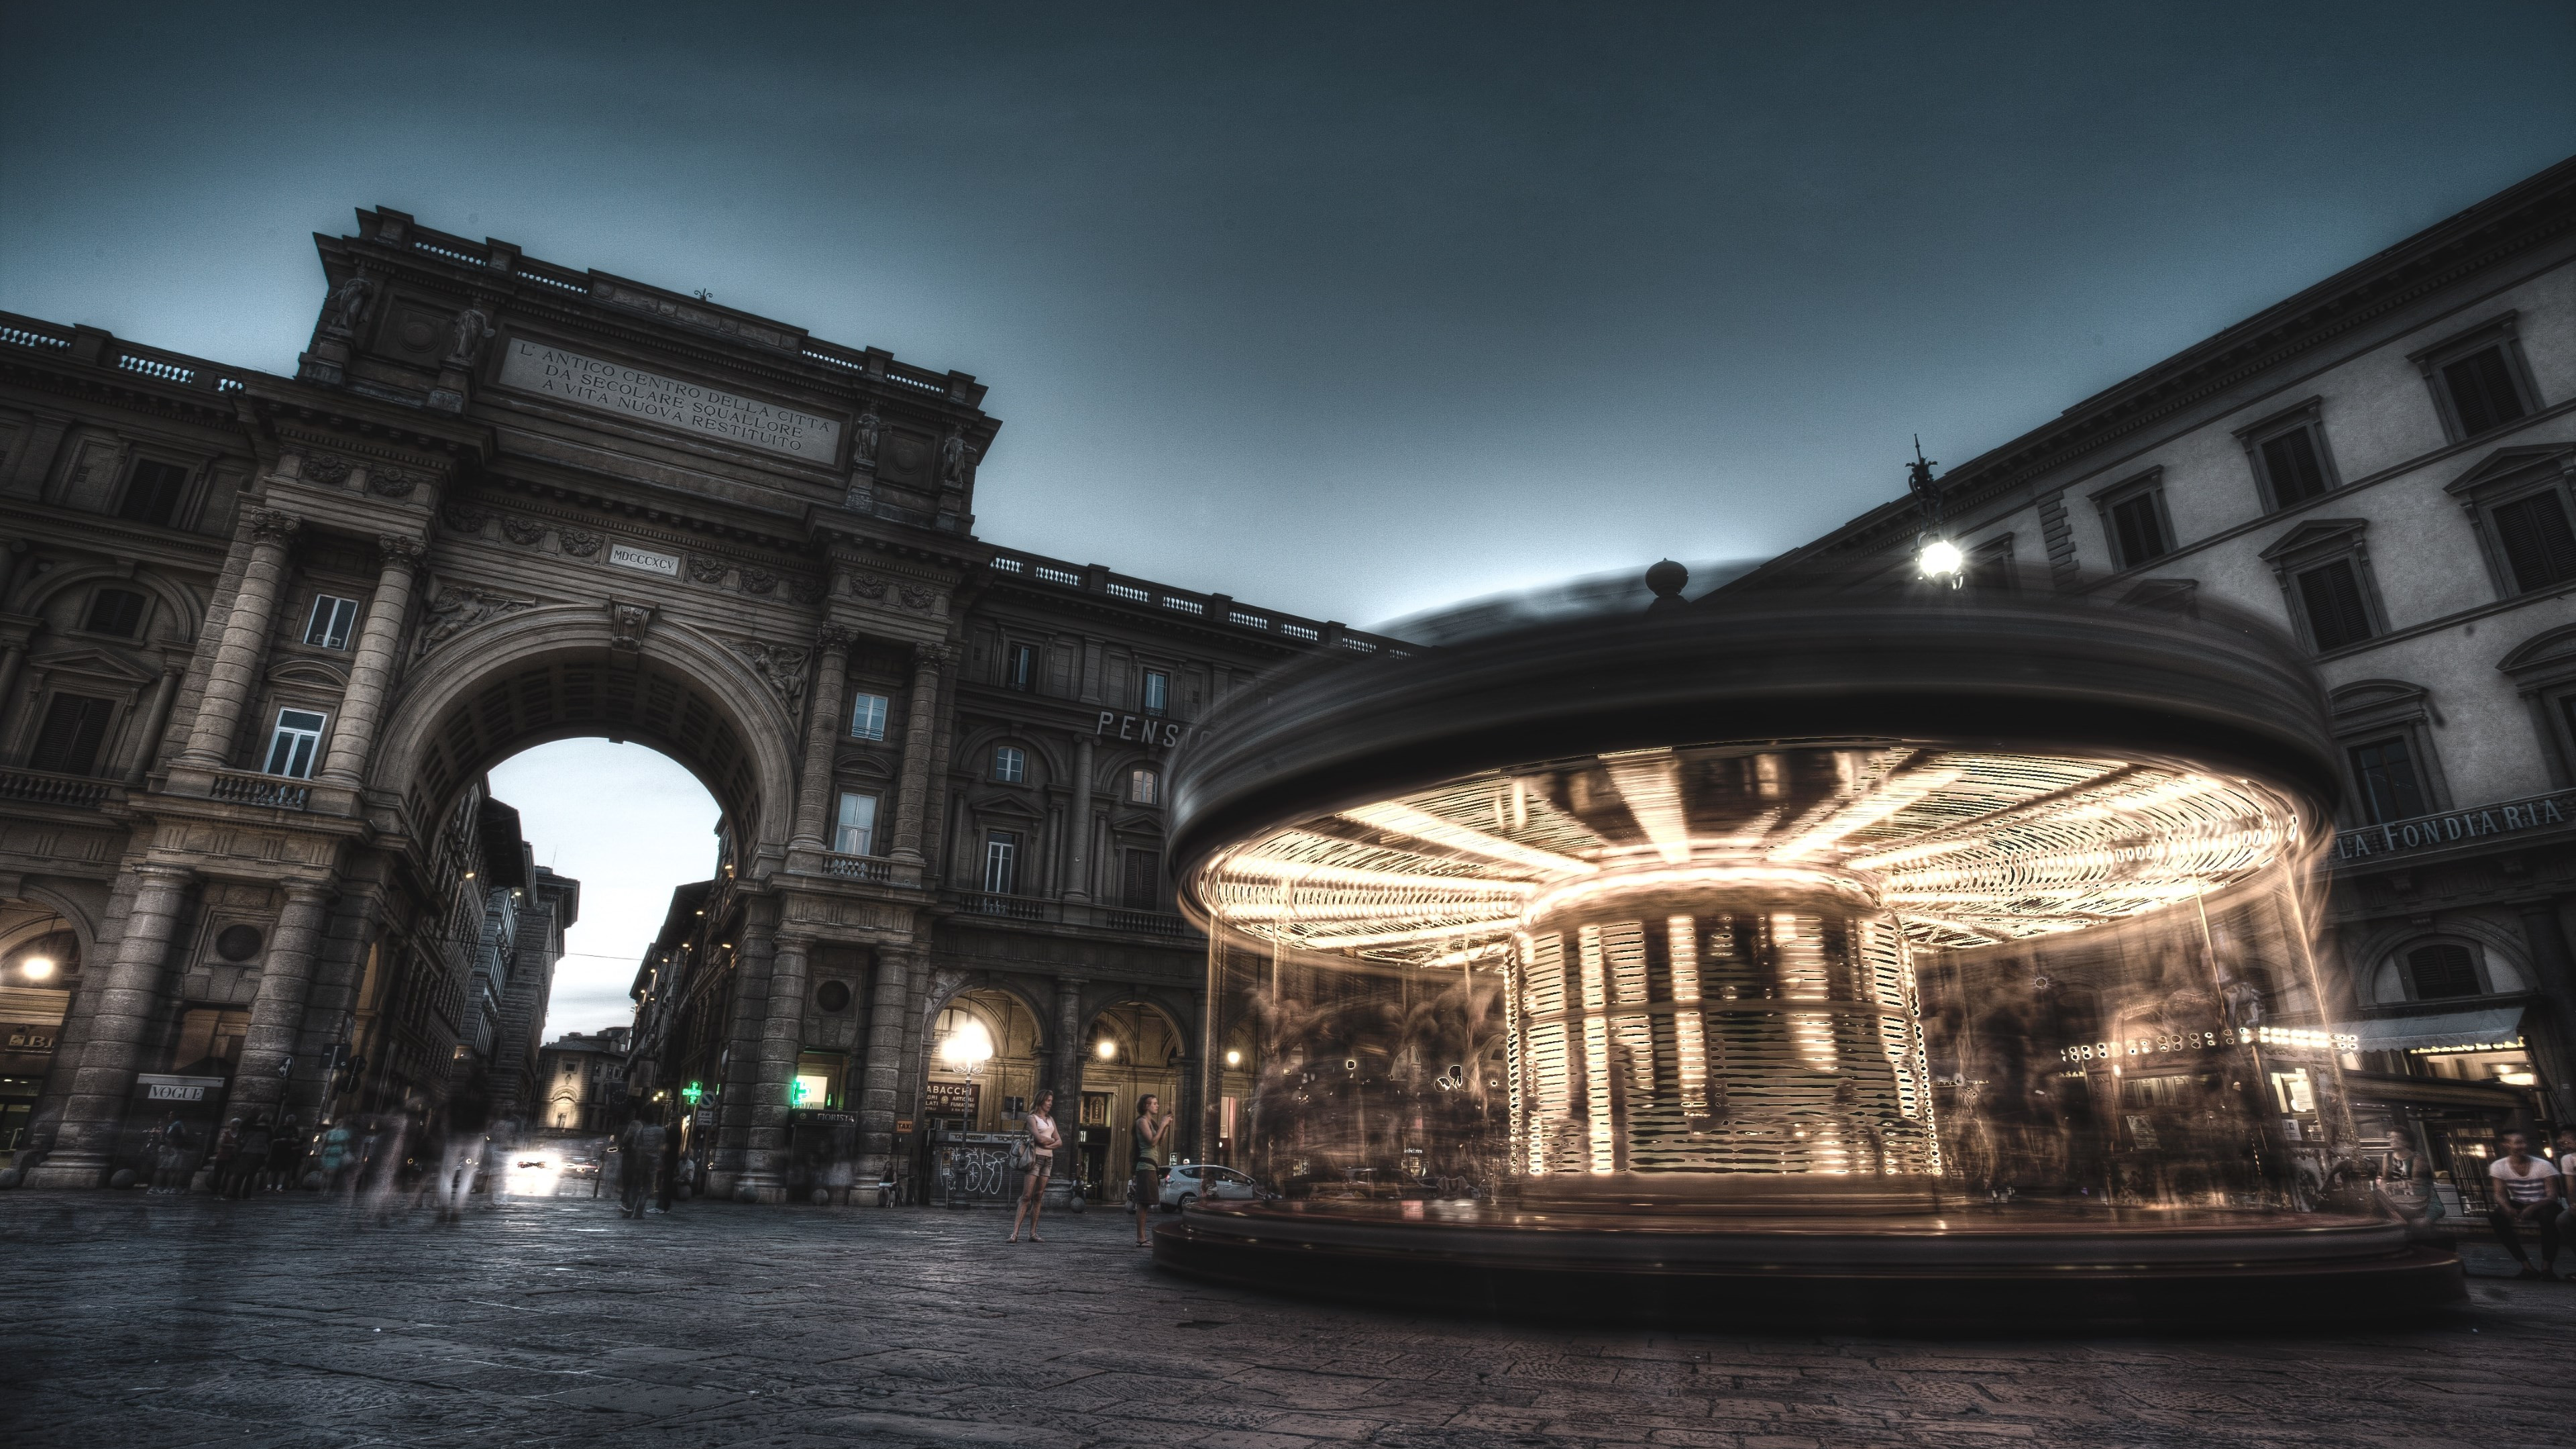 Carousel, people and buildings from Florence wallpaper 3840x2160